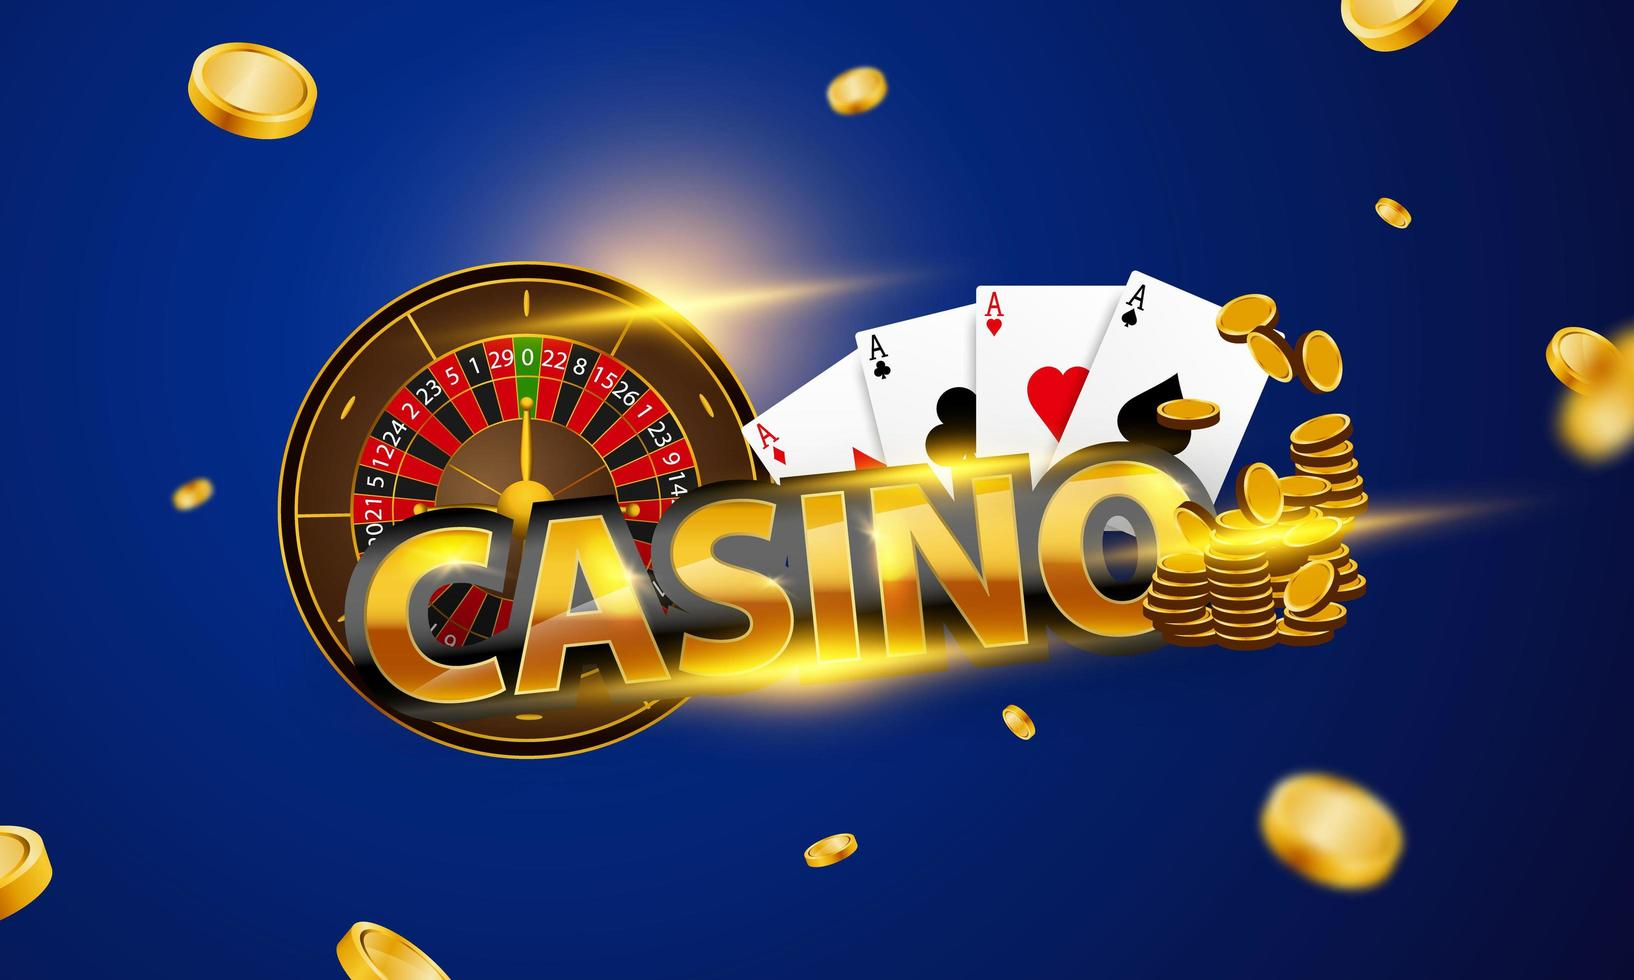 Casino poster with roulette wheel, aces and coins - Download Free ...